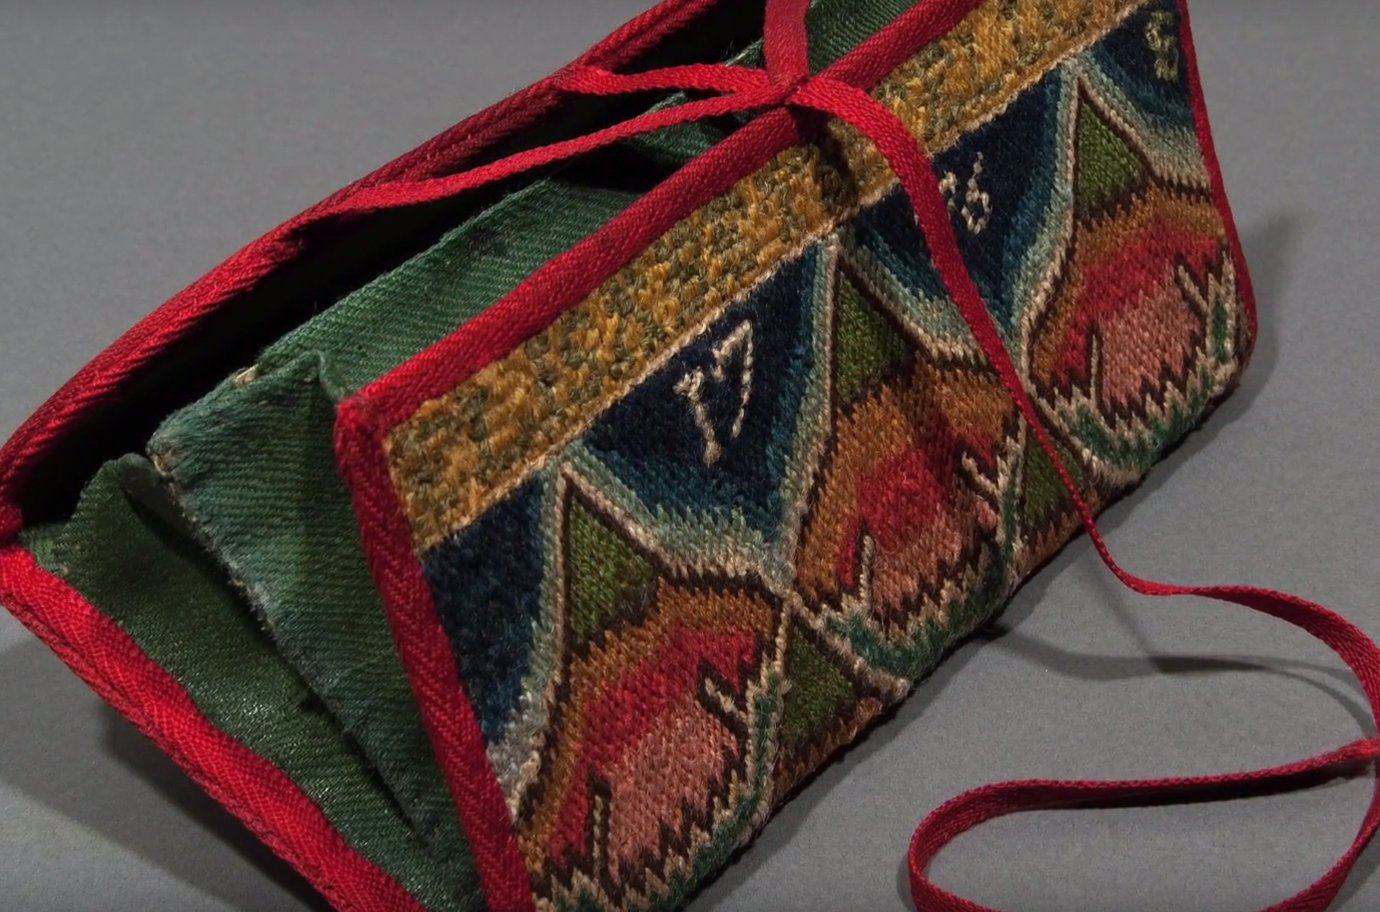 Highlights from the Fielding Collection of Early American Art: 1776 Pocketbook